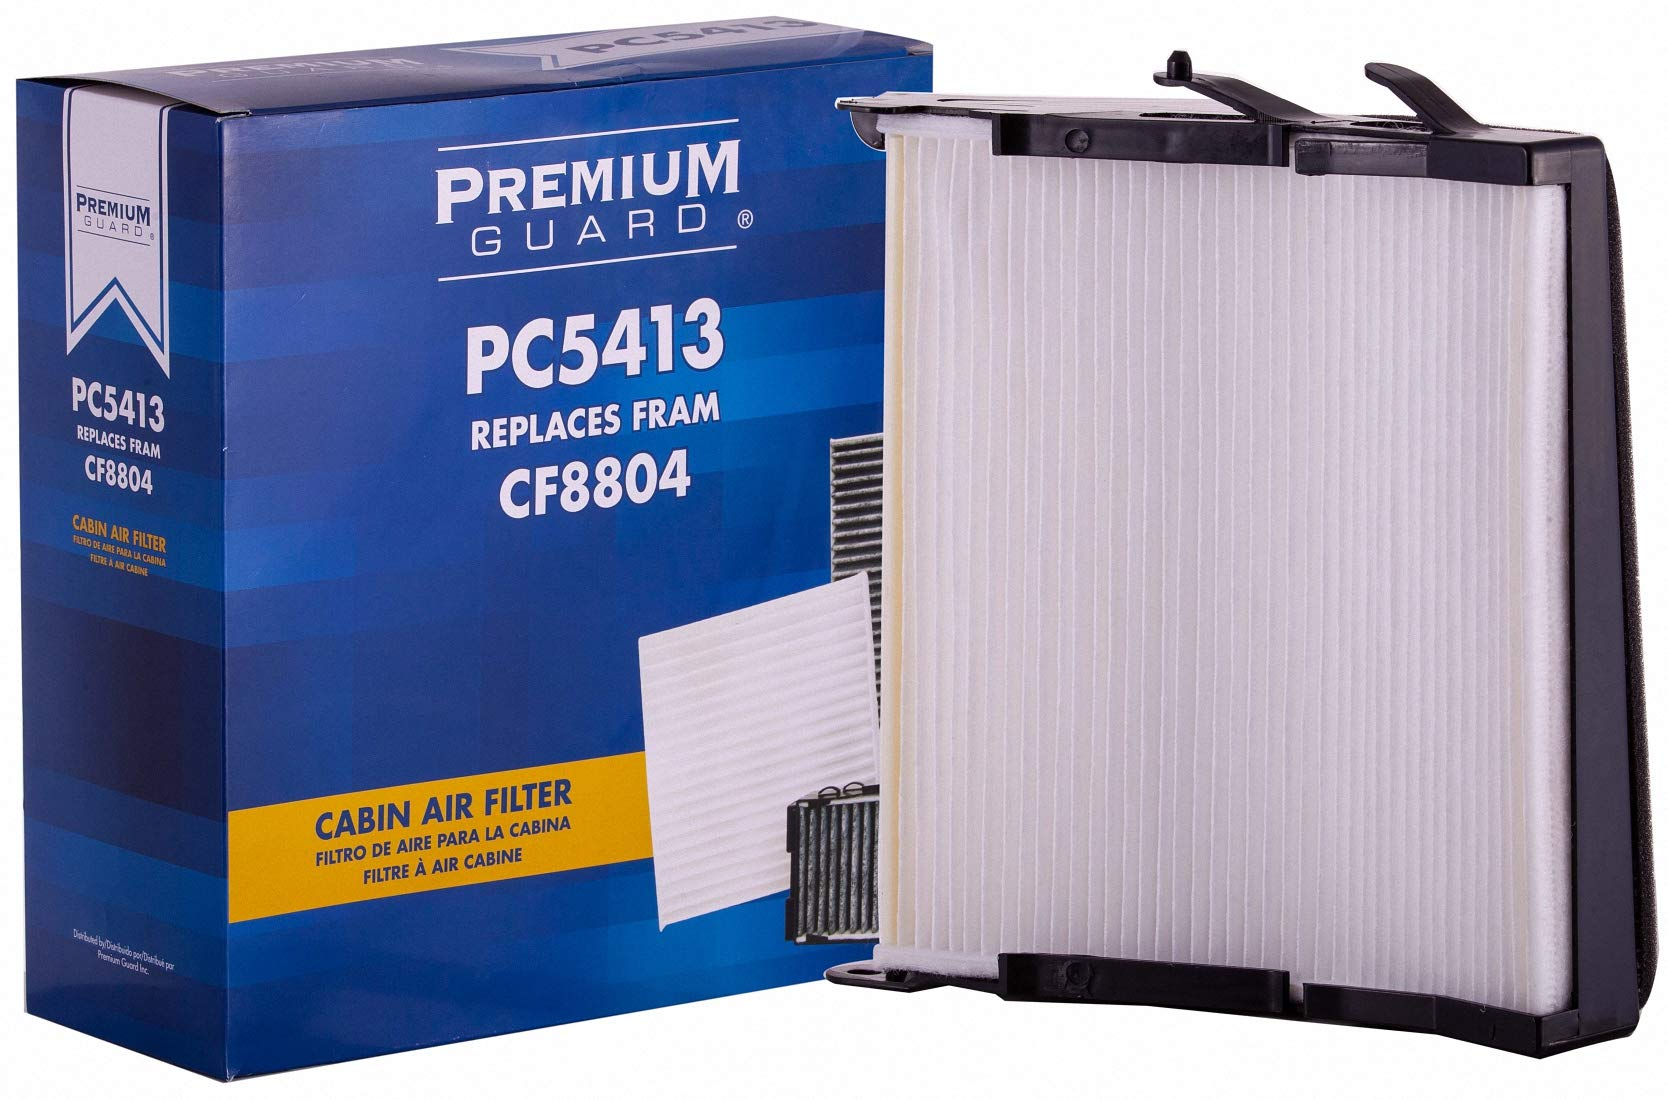 PG Cabin Air Filter PC5413 | Fits 2000-05 Buick LeSabre, 2006-11 Lucerne, 2000-05 Pontiac Bonneville